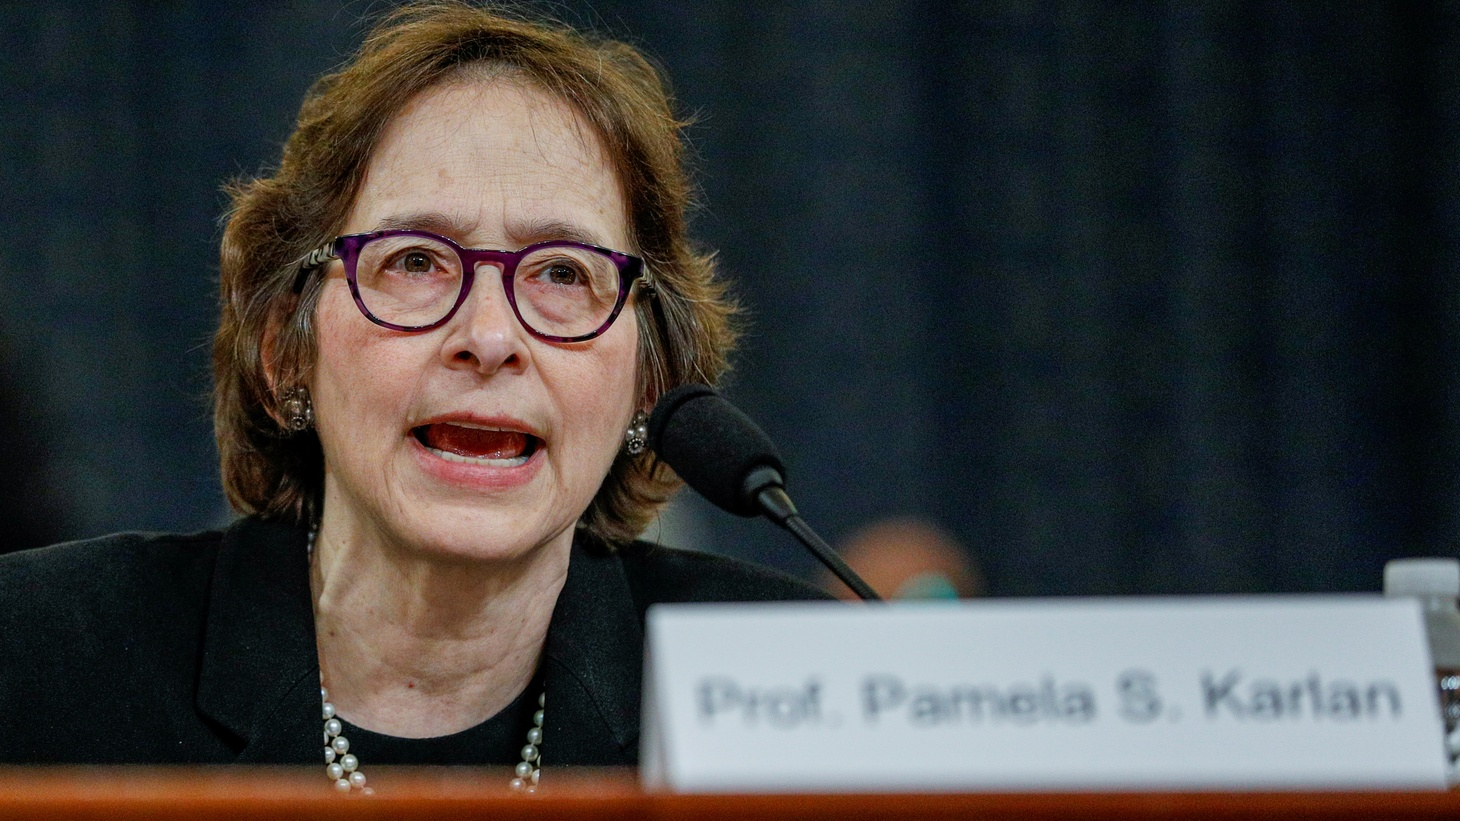 Pamela Karlan, professor of Public Interest Law and co-director of the Supreme Court Litigation Clinic at Stanford Law School, testifies during a House Judiciary Committee hearing on the impeachment inquiry into U.S. President Donald Trump on Capitol Hill in Washington, U.S., December 4, 2019.